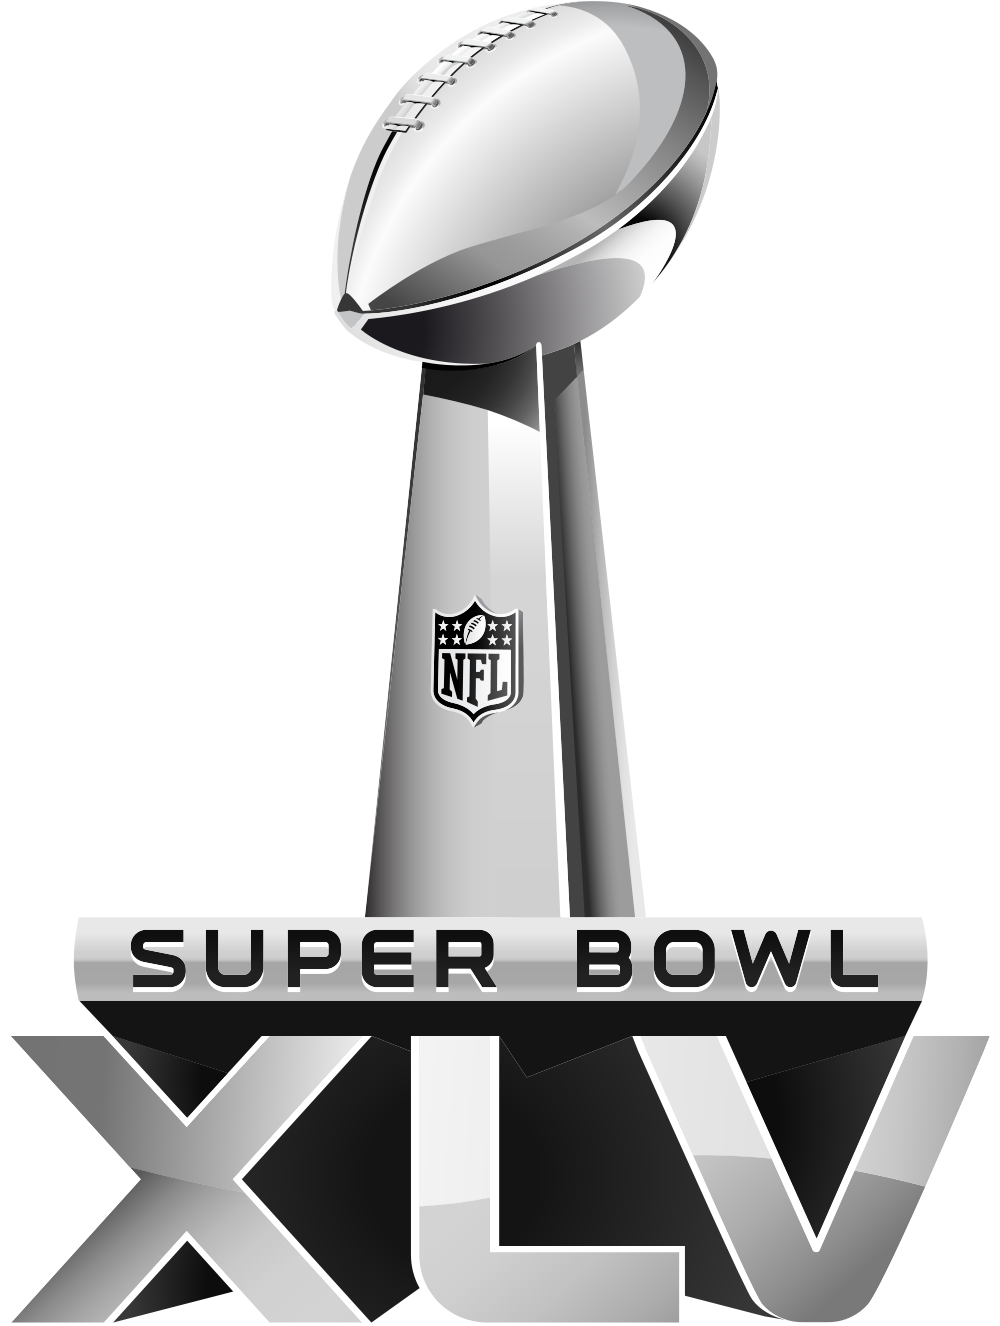 The Lombardi trophy went to the Ravens this year. Photo courtesy of the National Football League